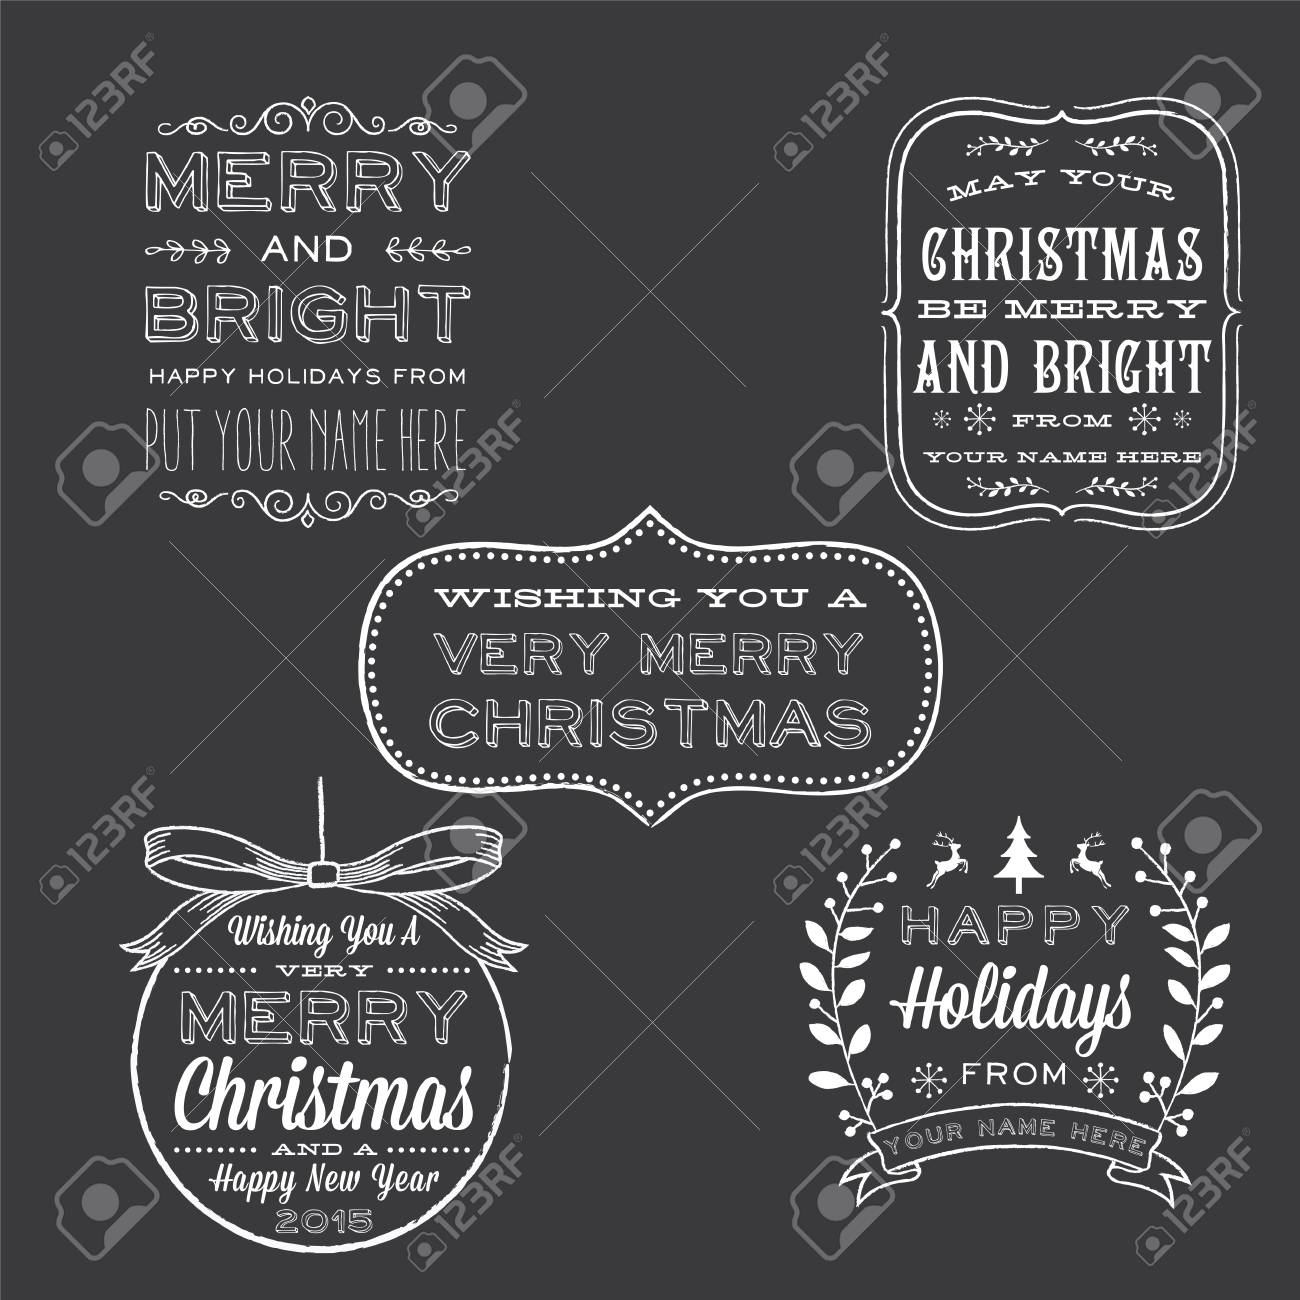 Holiday Chalkboard Greetings Christmas And New Years Holiday